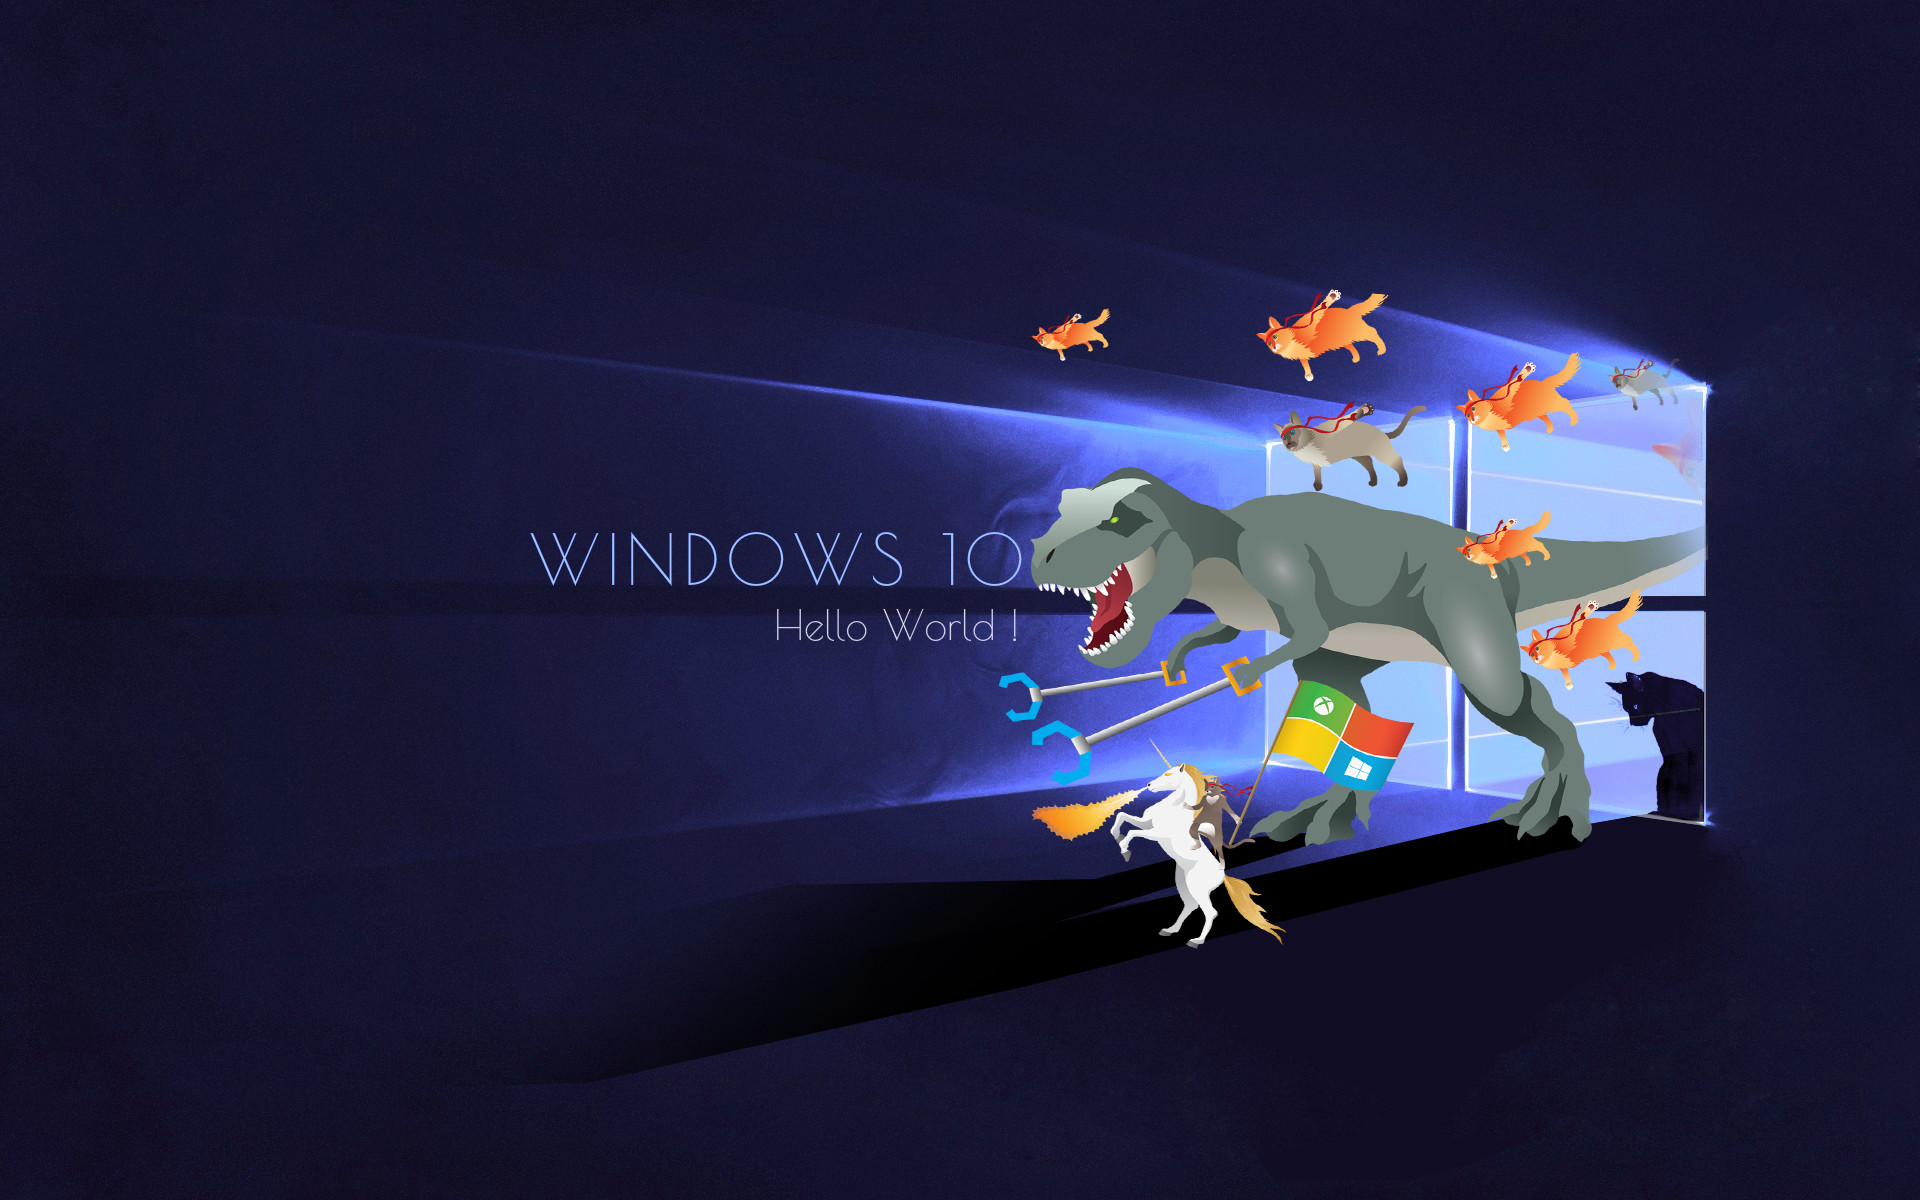 1920x1200 Awesome Windows 10 T Rex Photos and Pictures, Windows 10 T Rex HQ  Definition Wallpapers